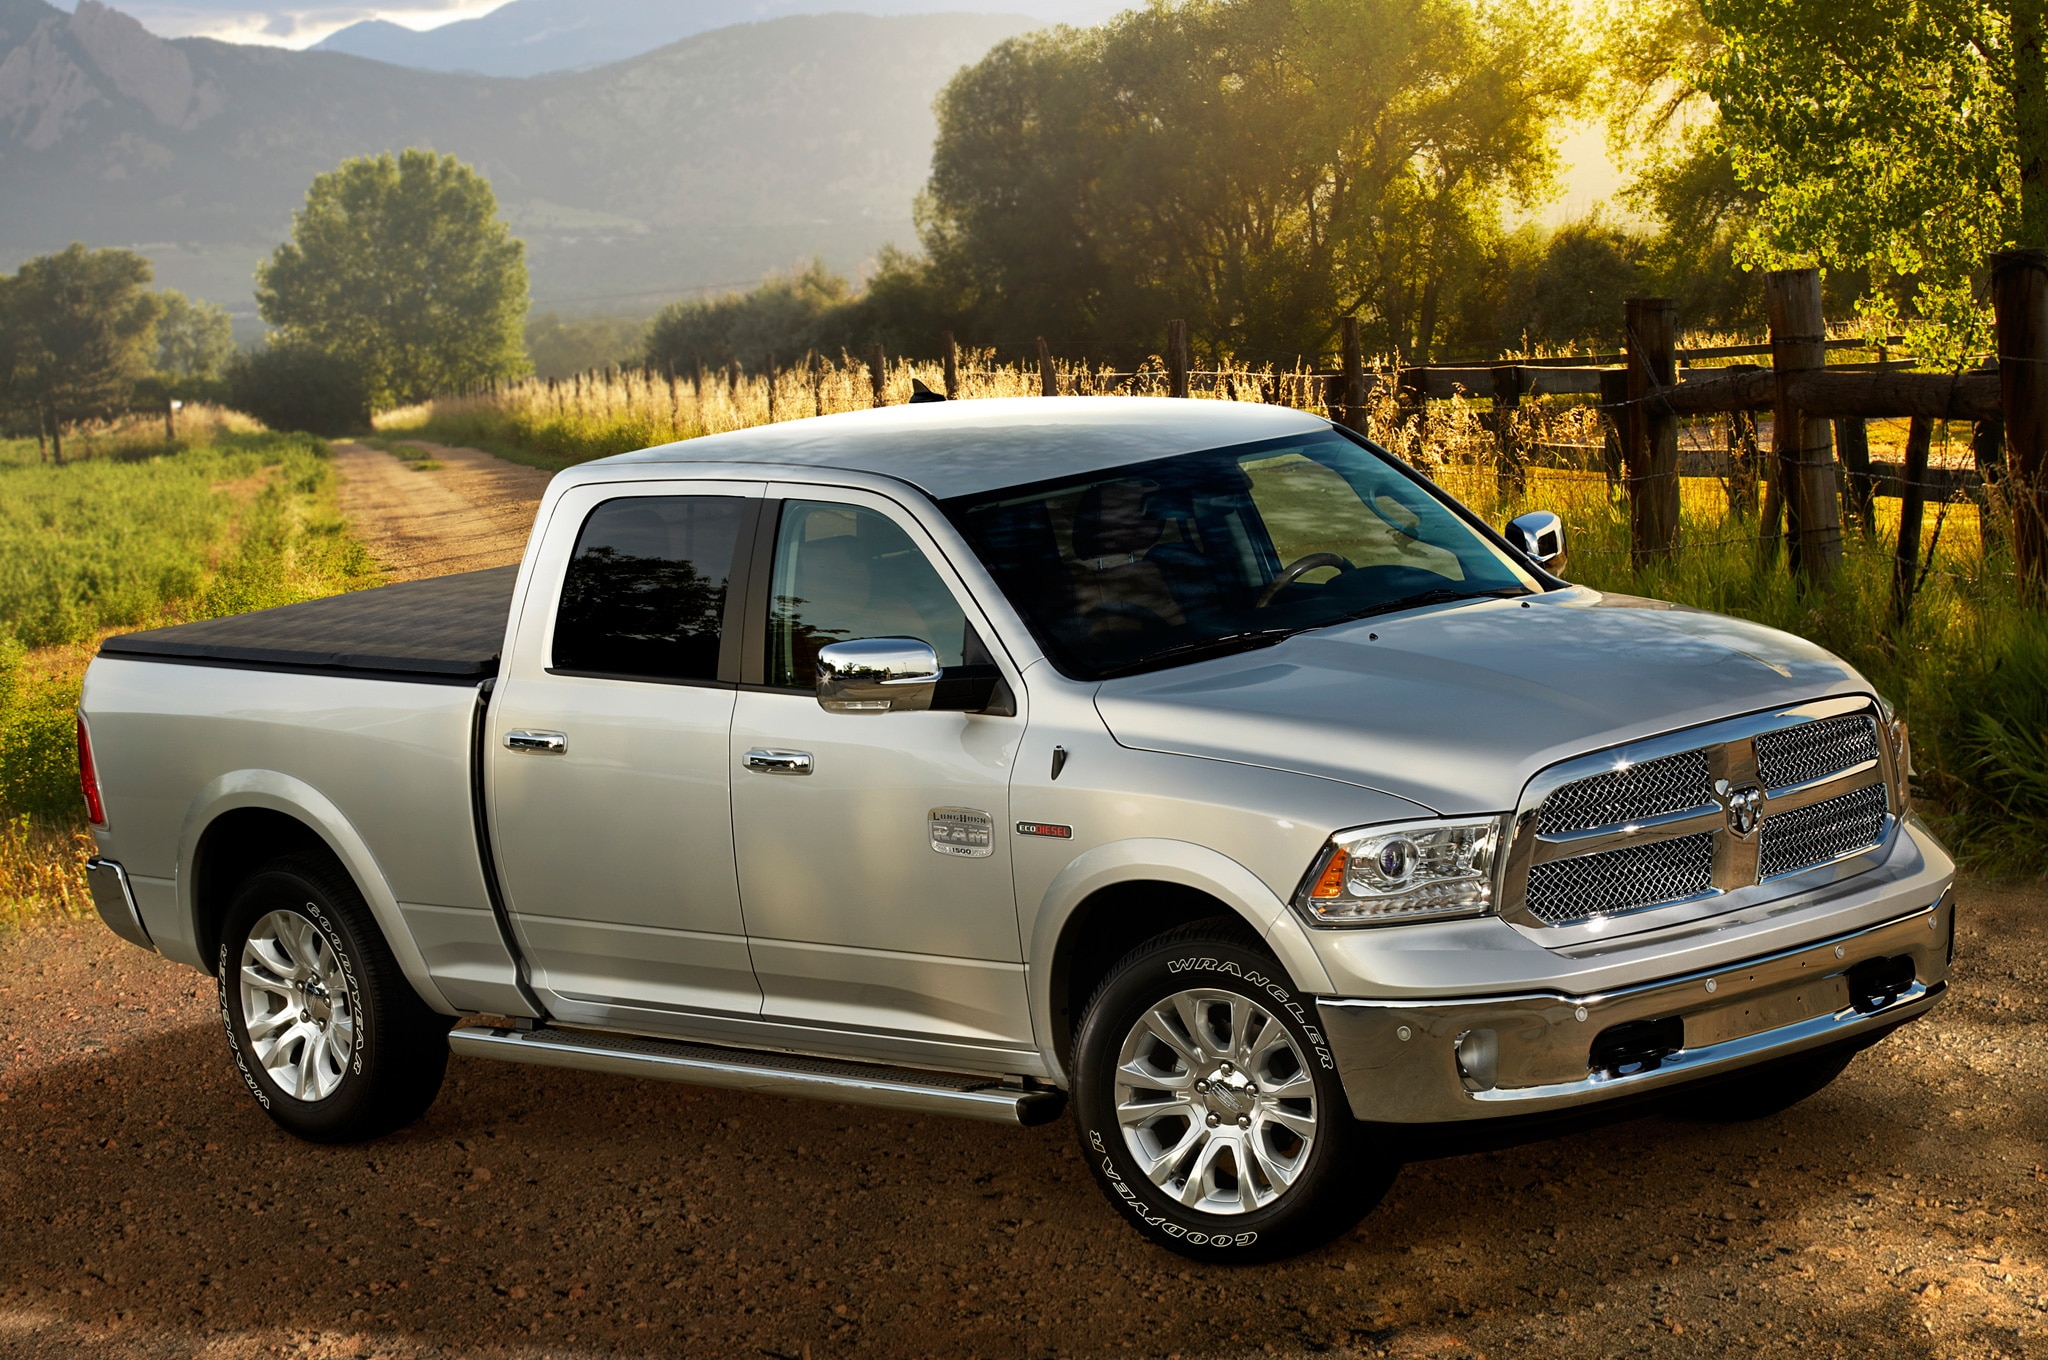 2014 Ram 1500 EcoDiesel Laramie Front Three Quarters View1